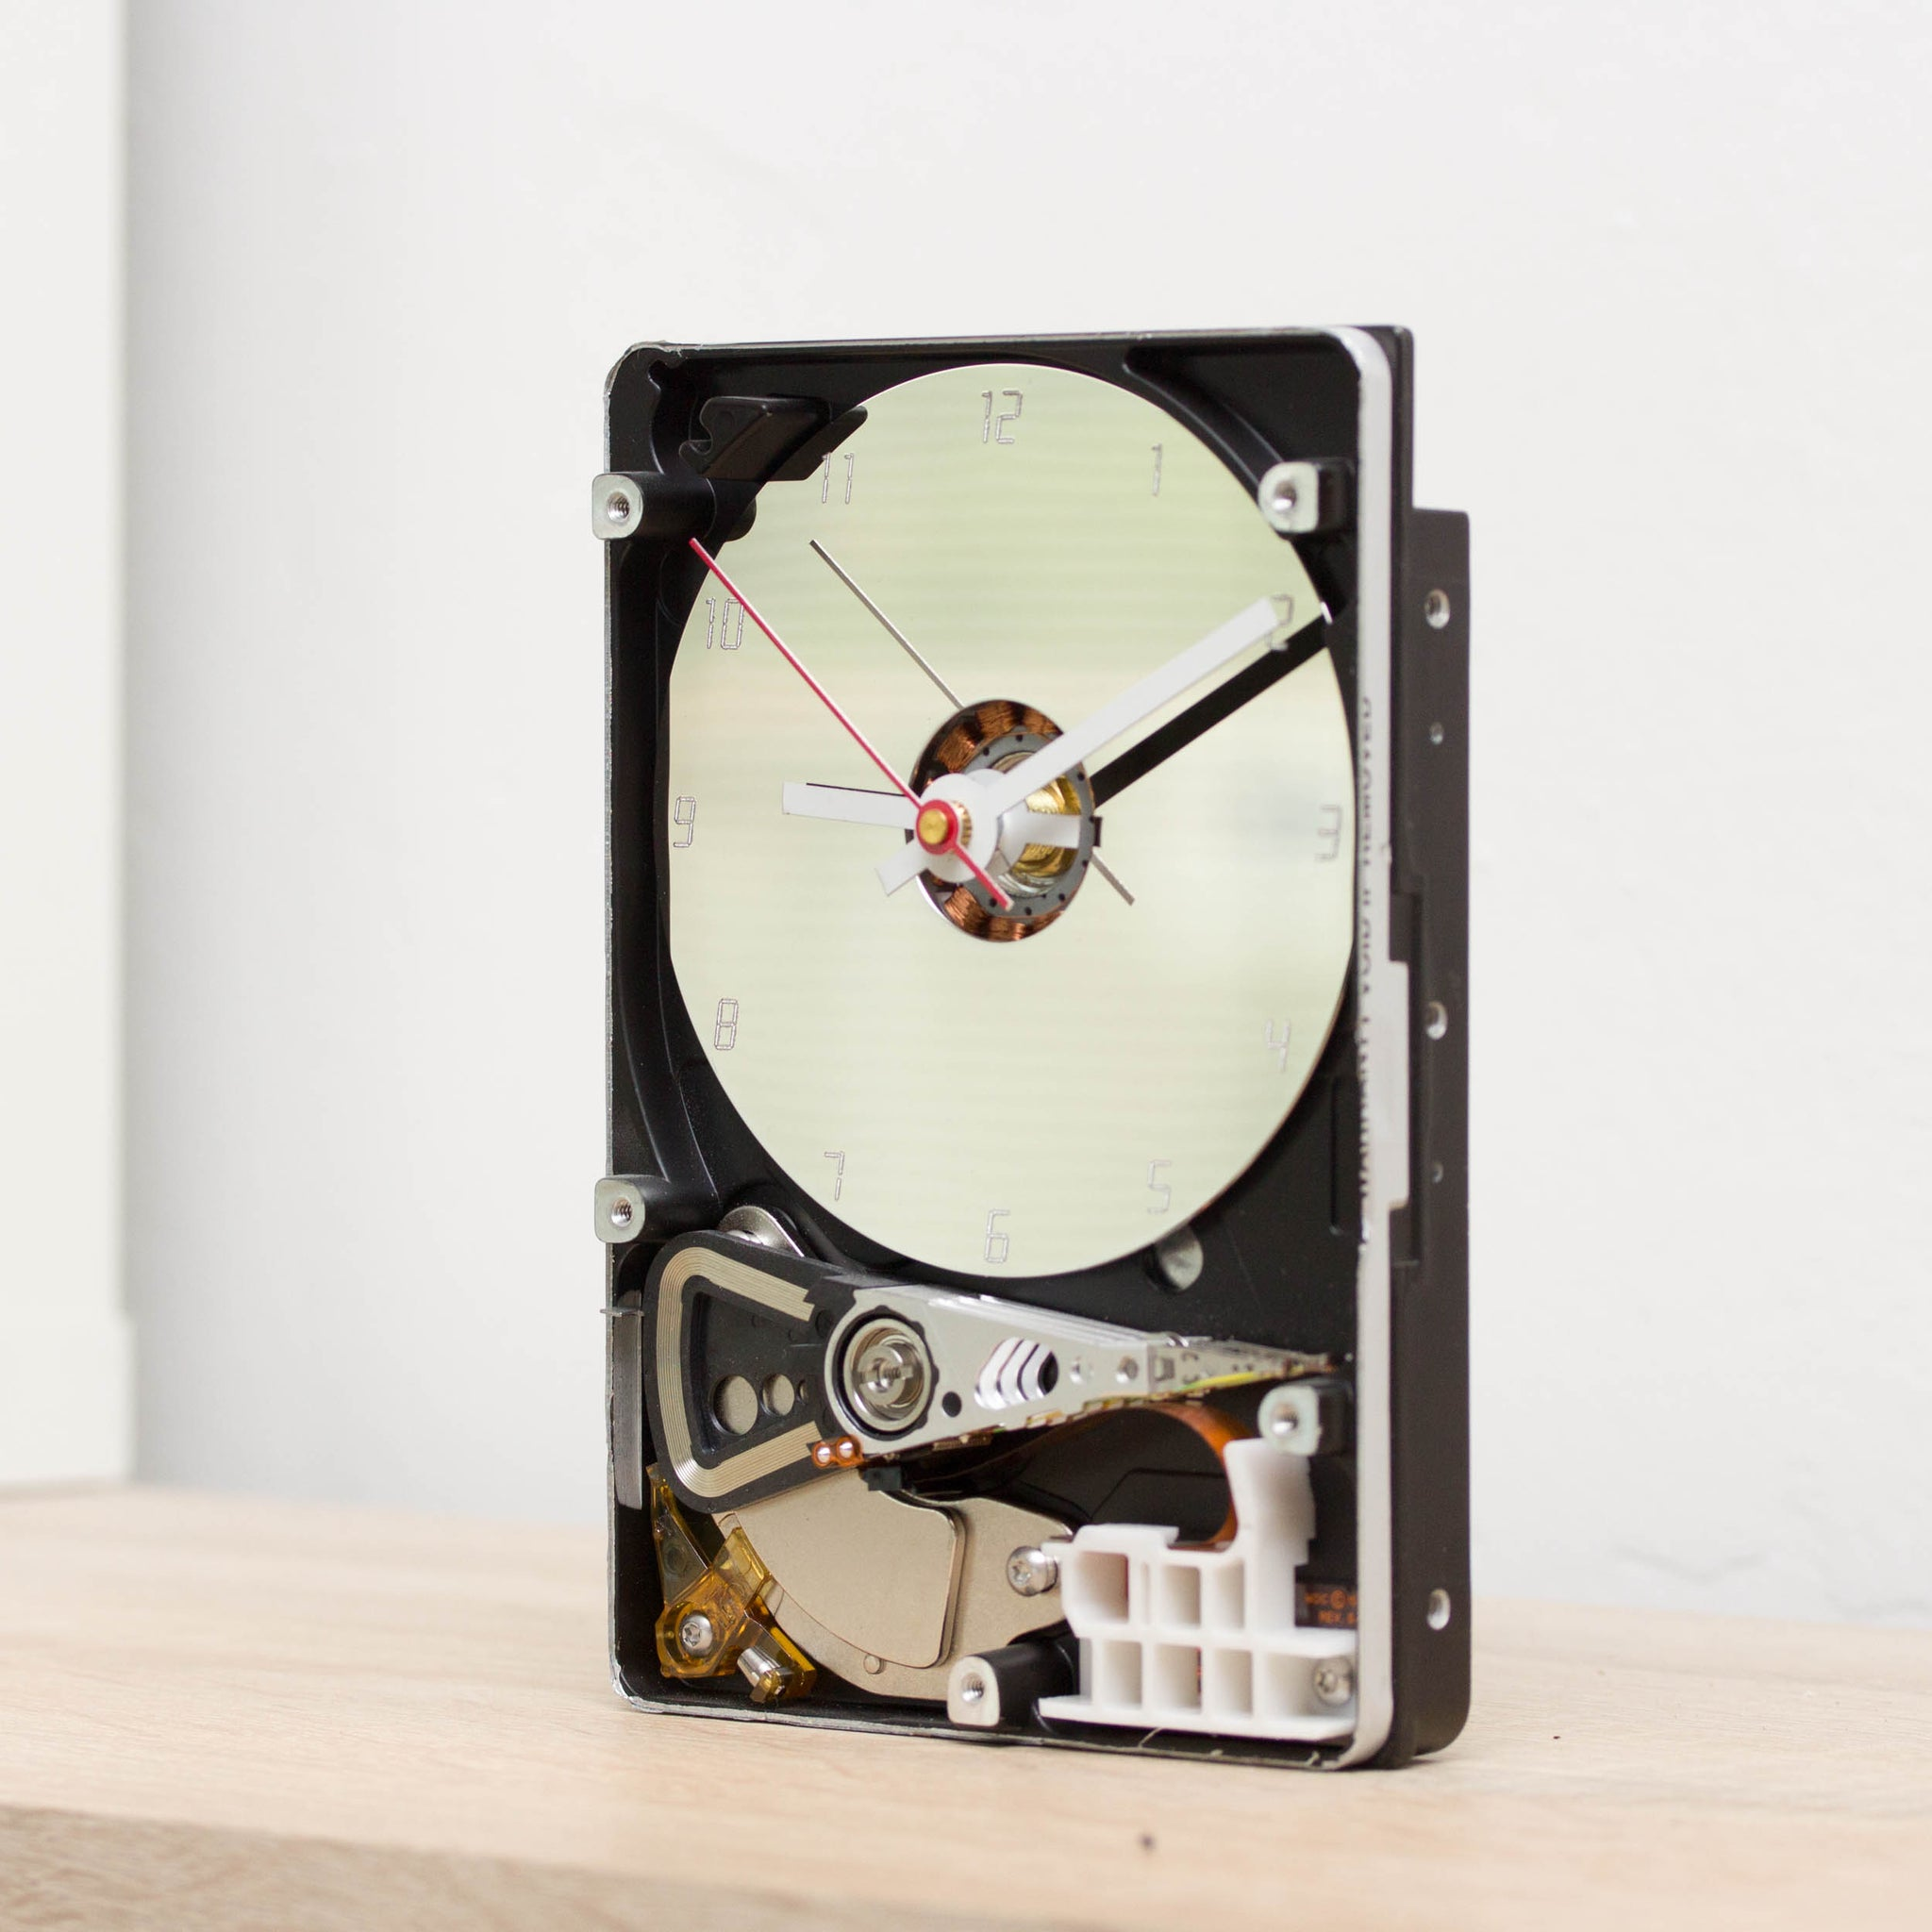 Desk clock made of recycled HDD drive